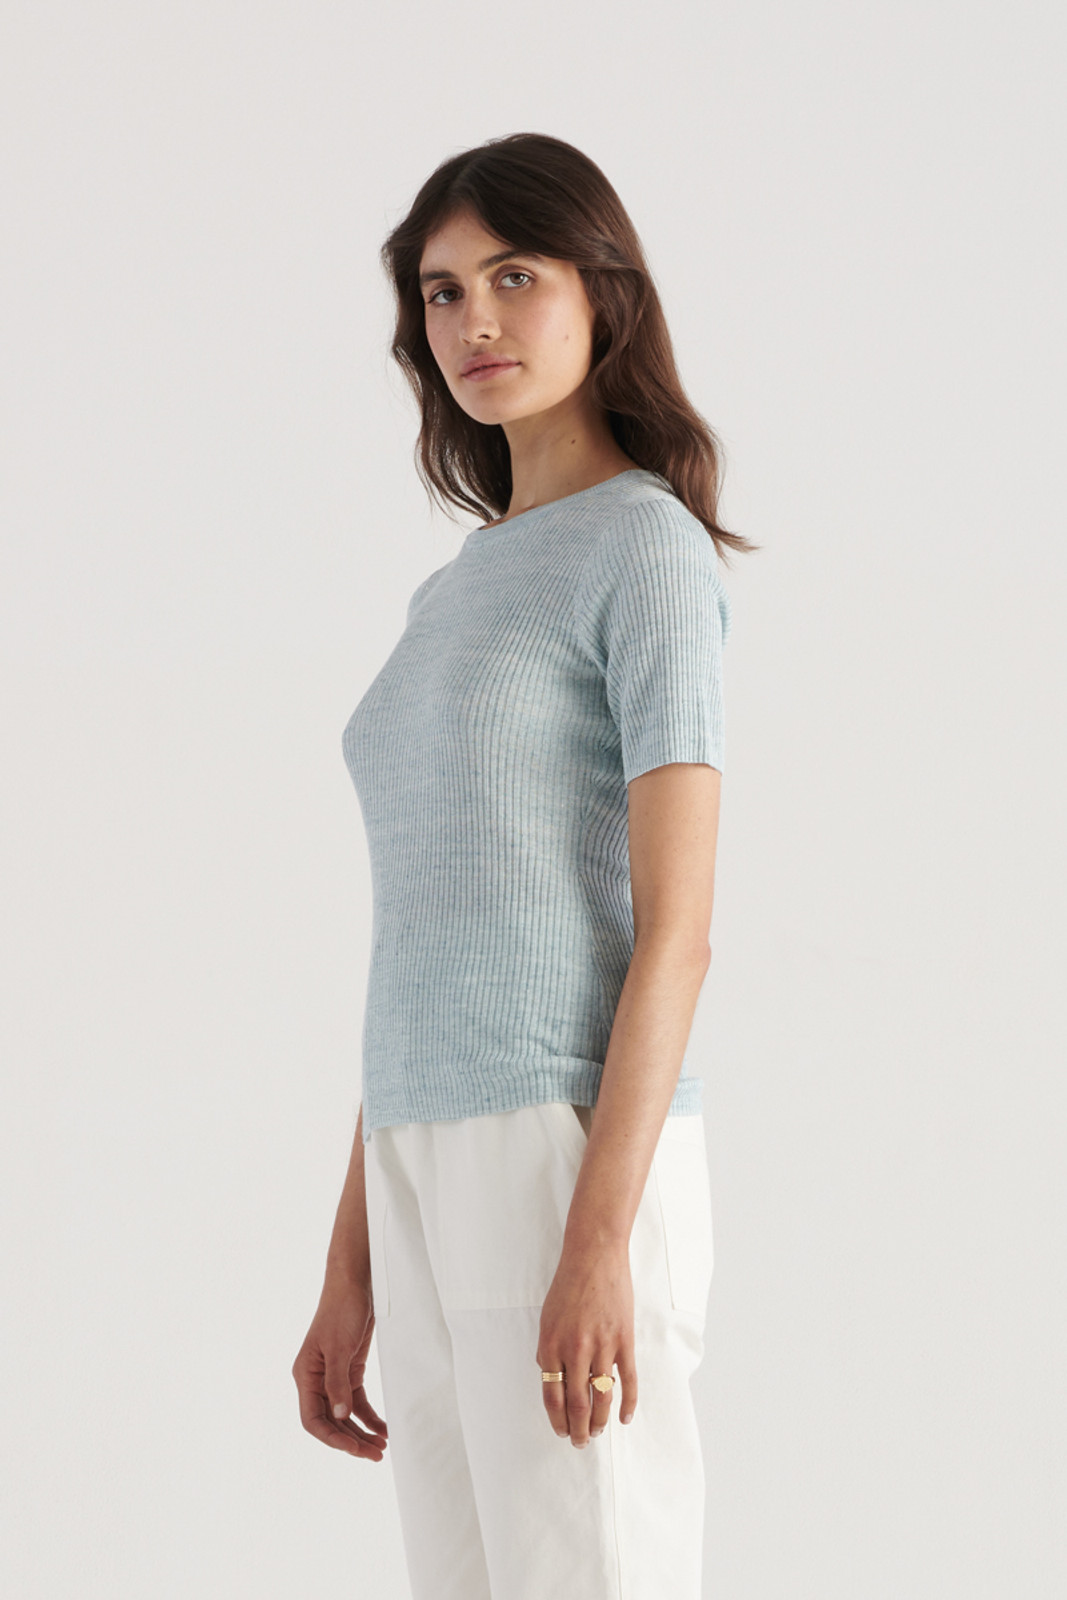 Elka Collective WomensGale Knit Top Sea Blue  0